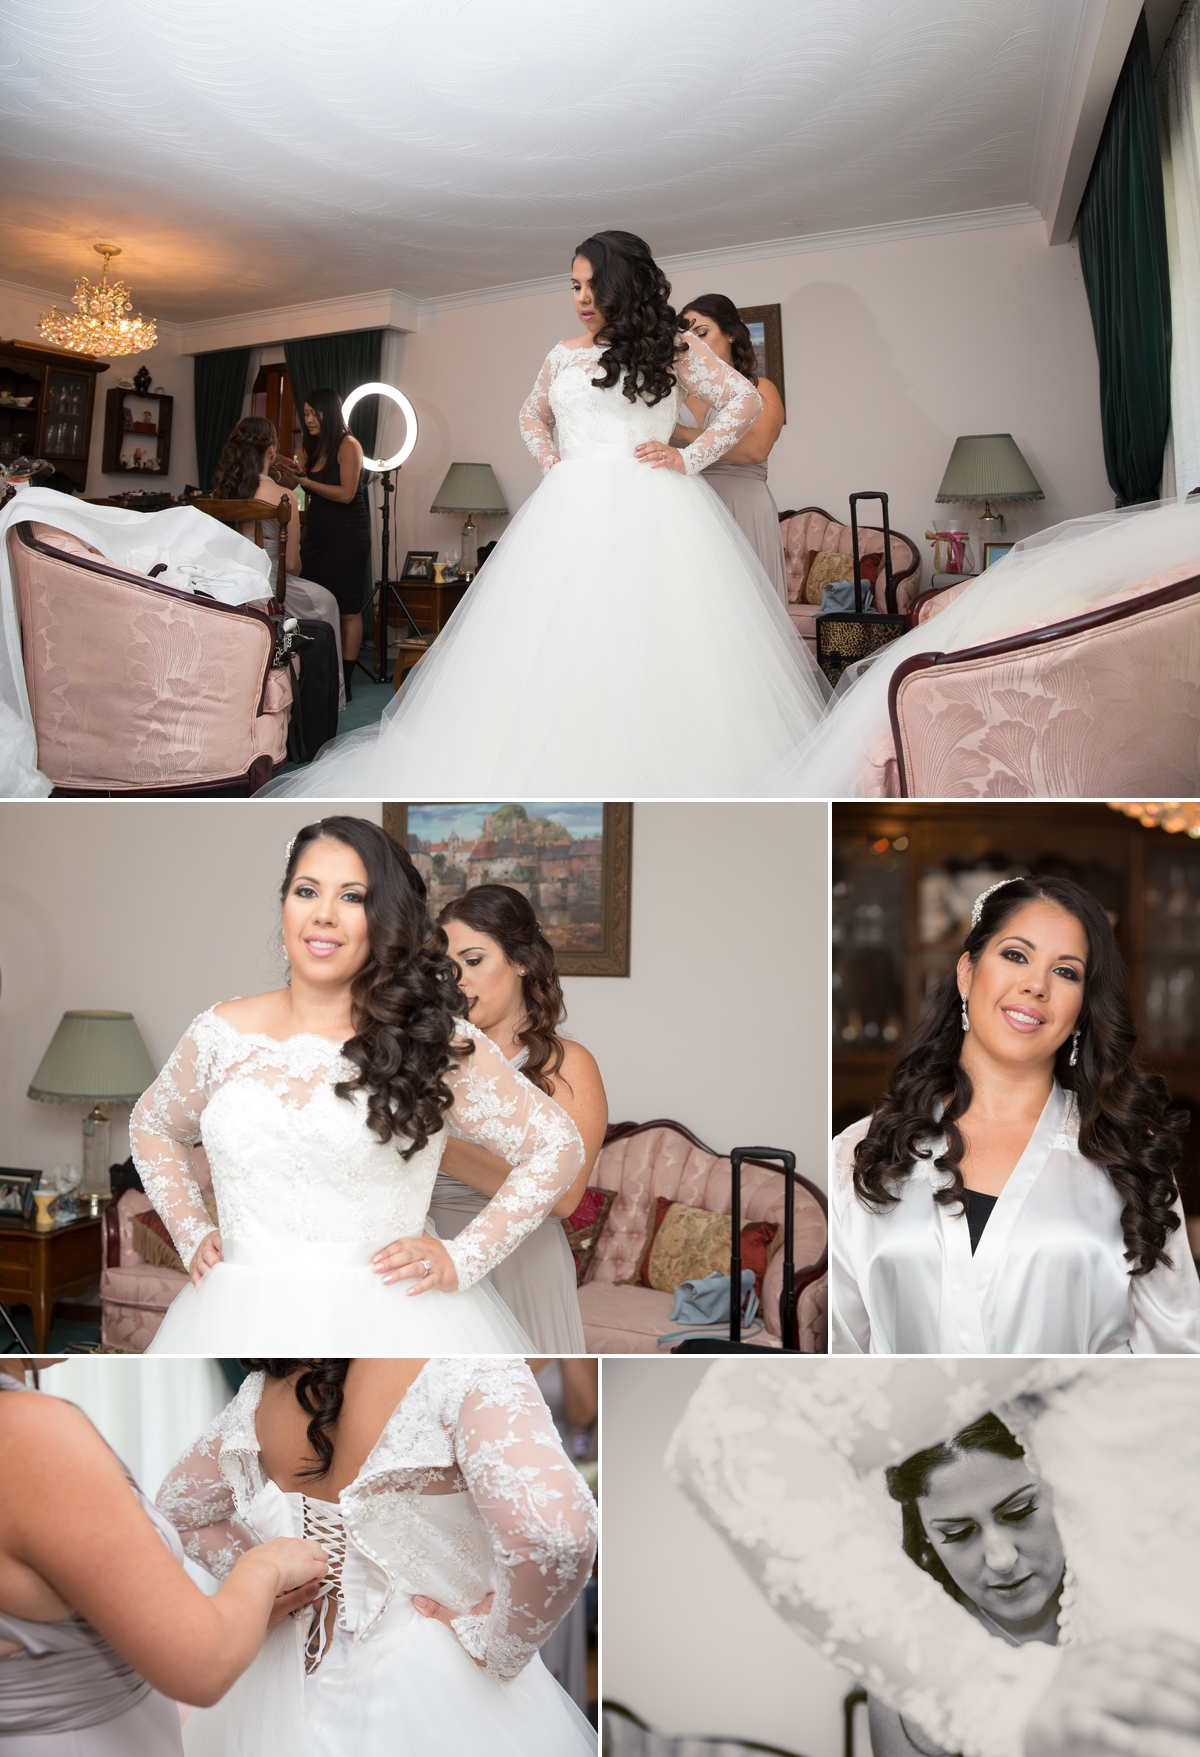 hamilton-wedding-photography-jj-wedding-0005